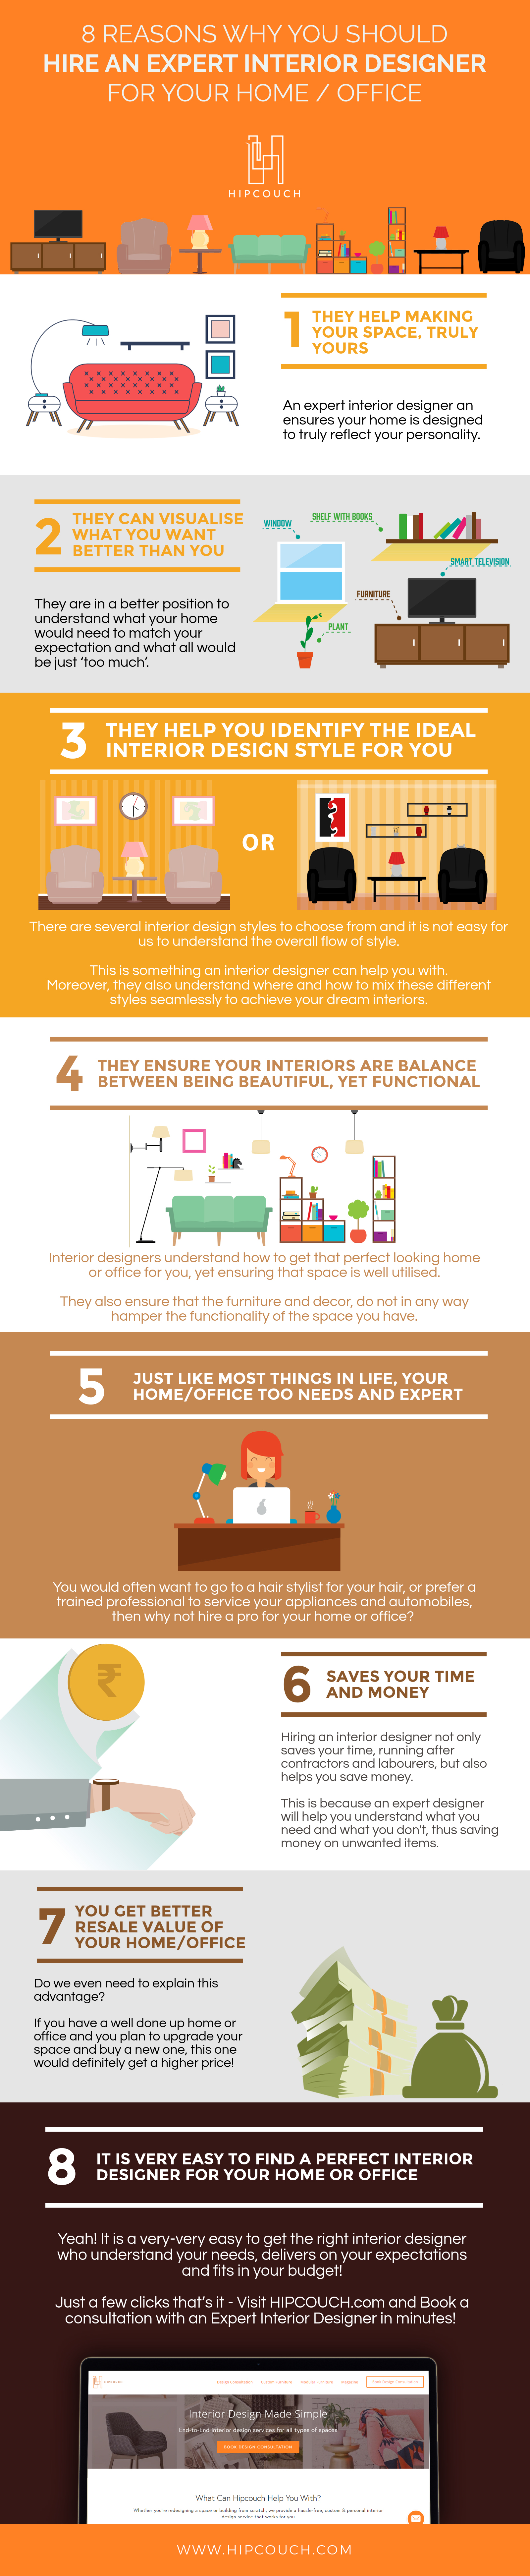 8 Reasons WHY you should hire an Interior Designer-Infographic.jpg